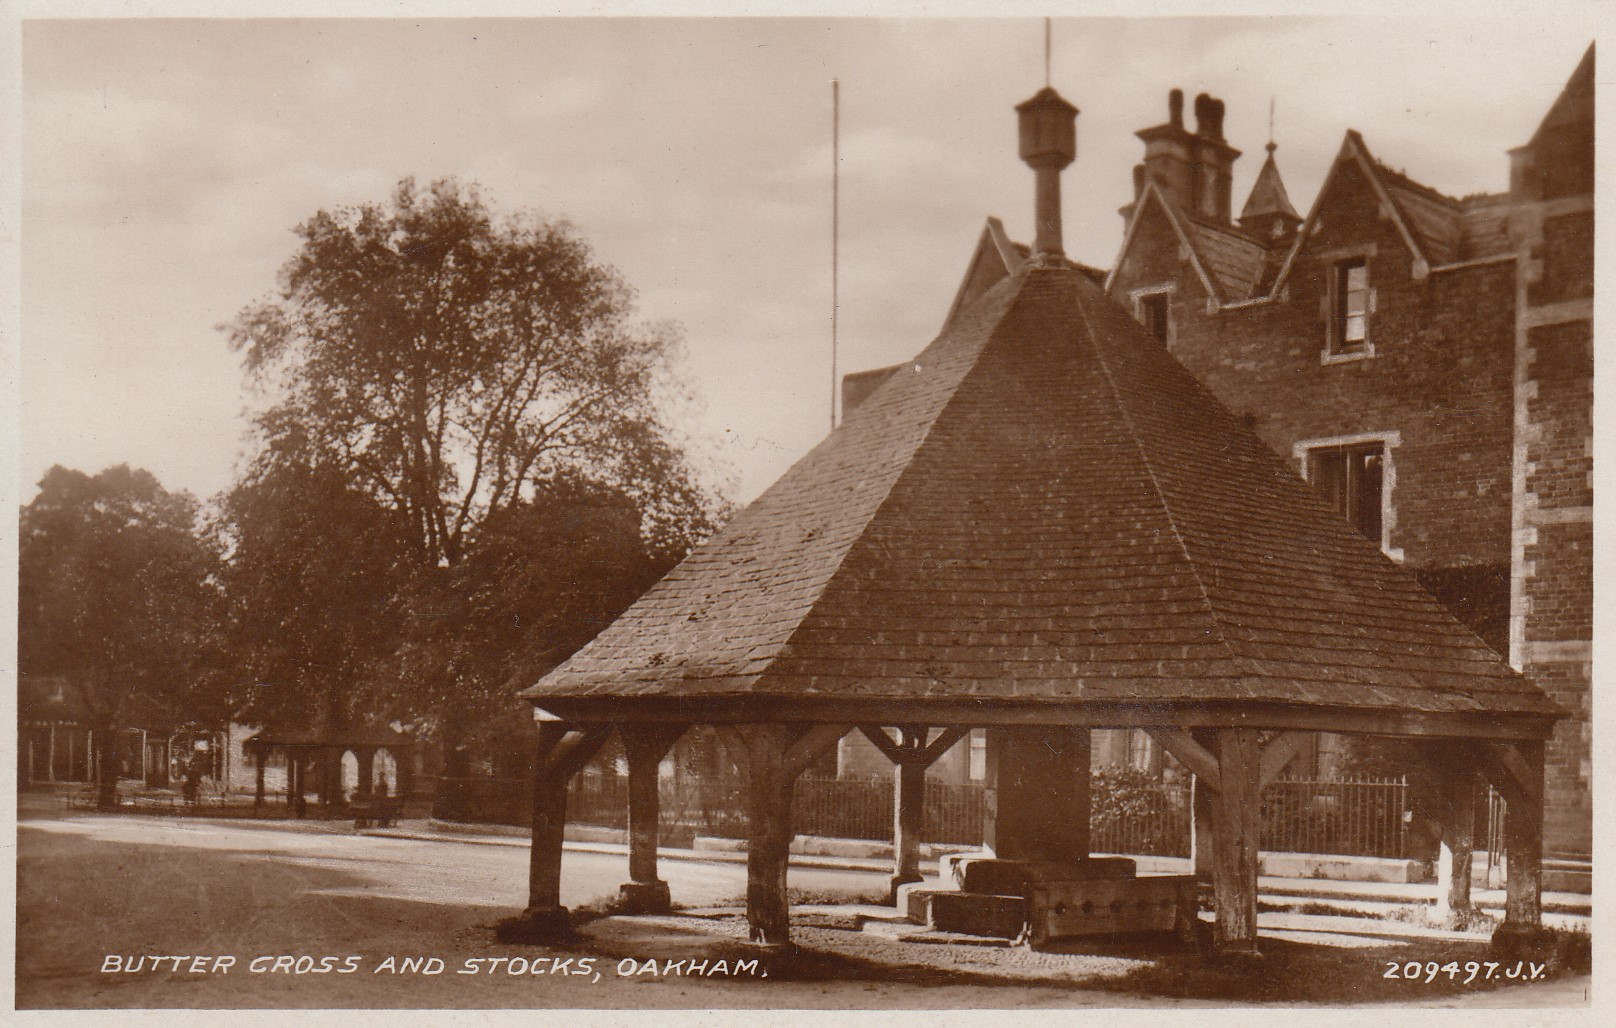 Butter Cross and Stocks, Oakham (Unknown date.  Printed by Valentine's Post Cards)